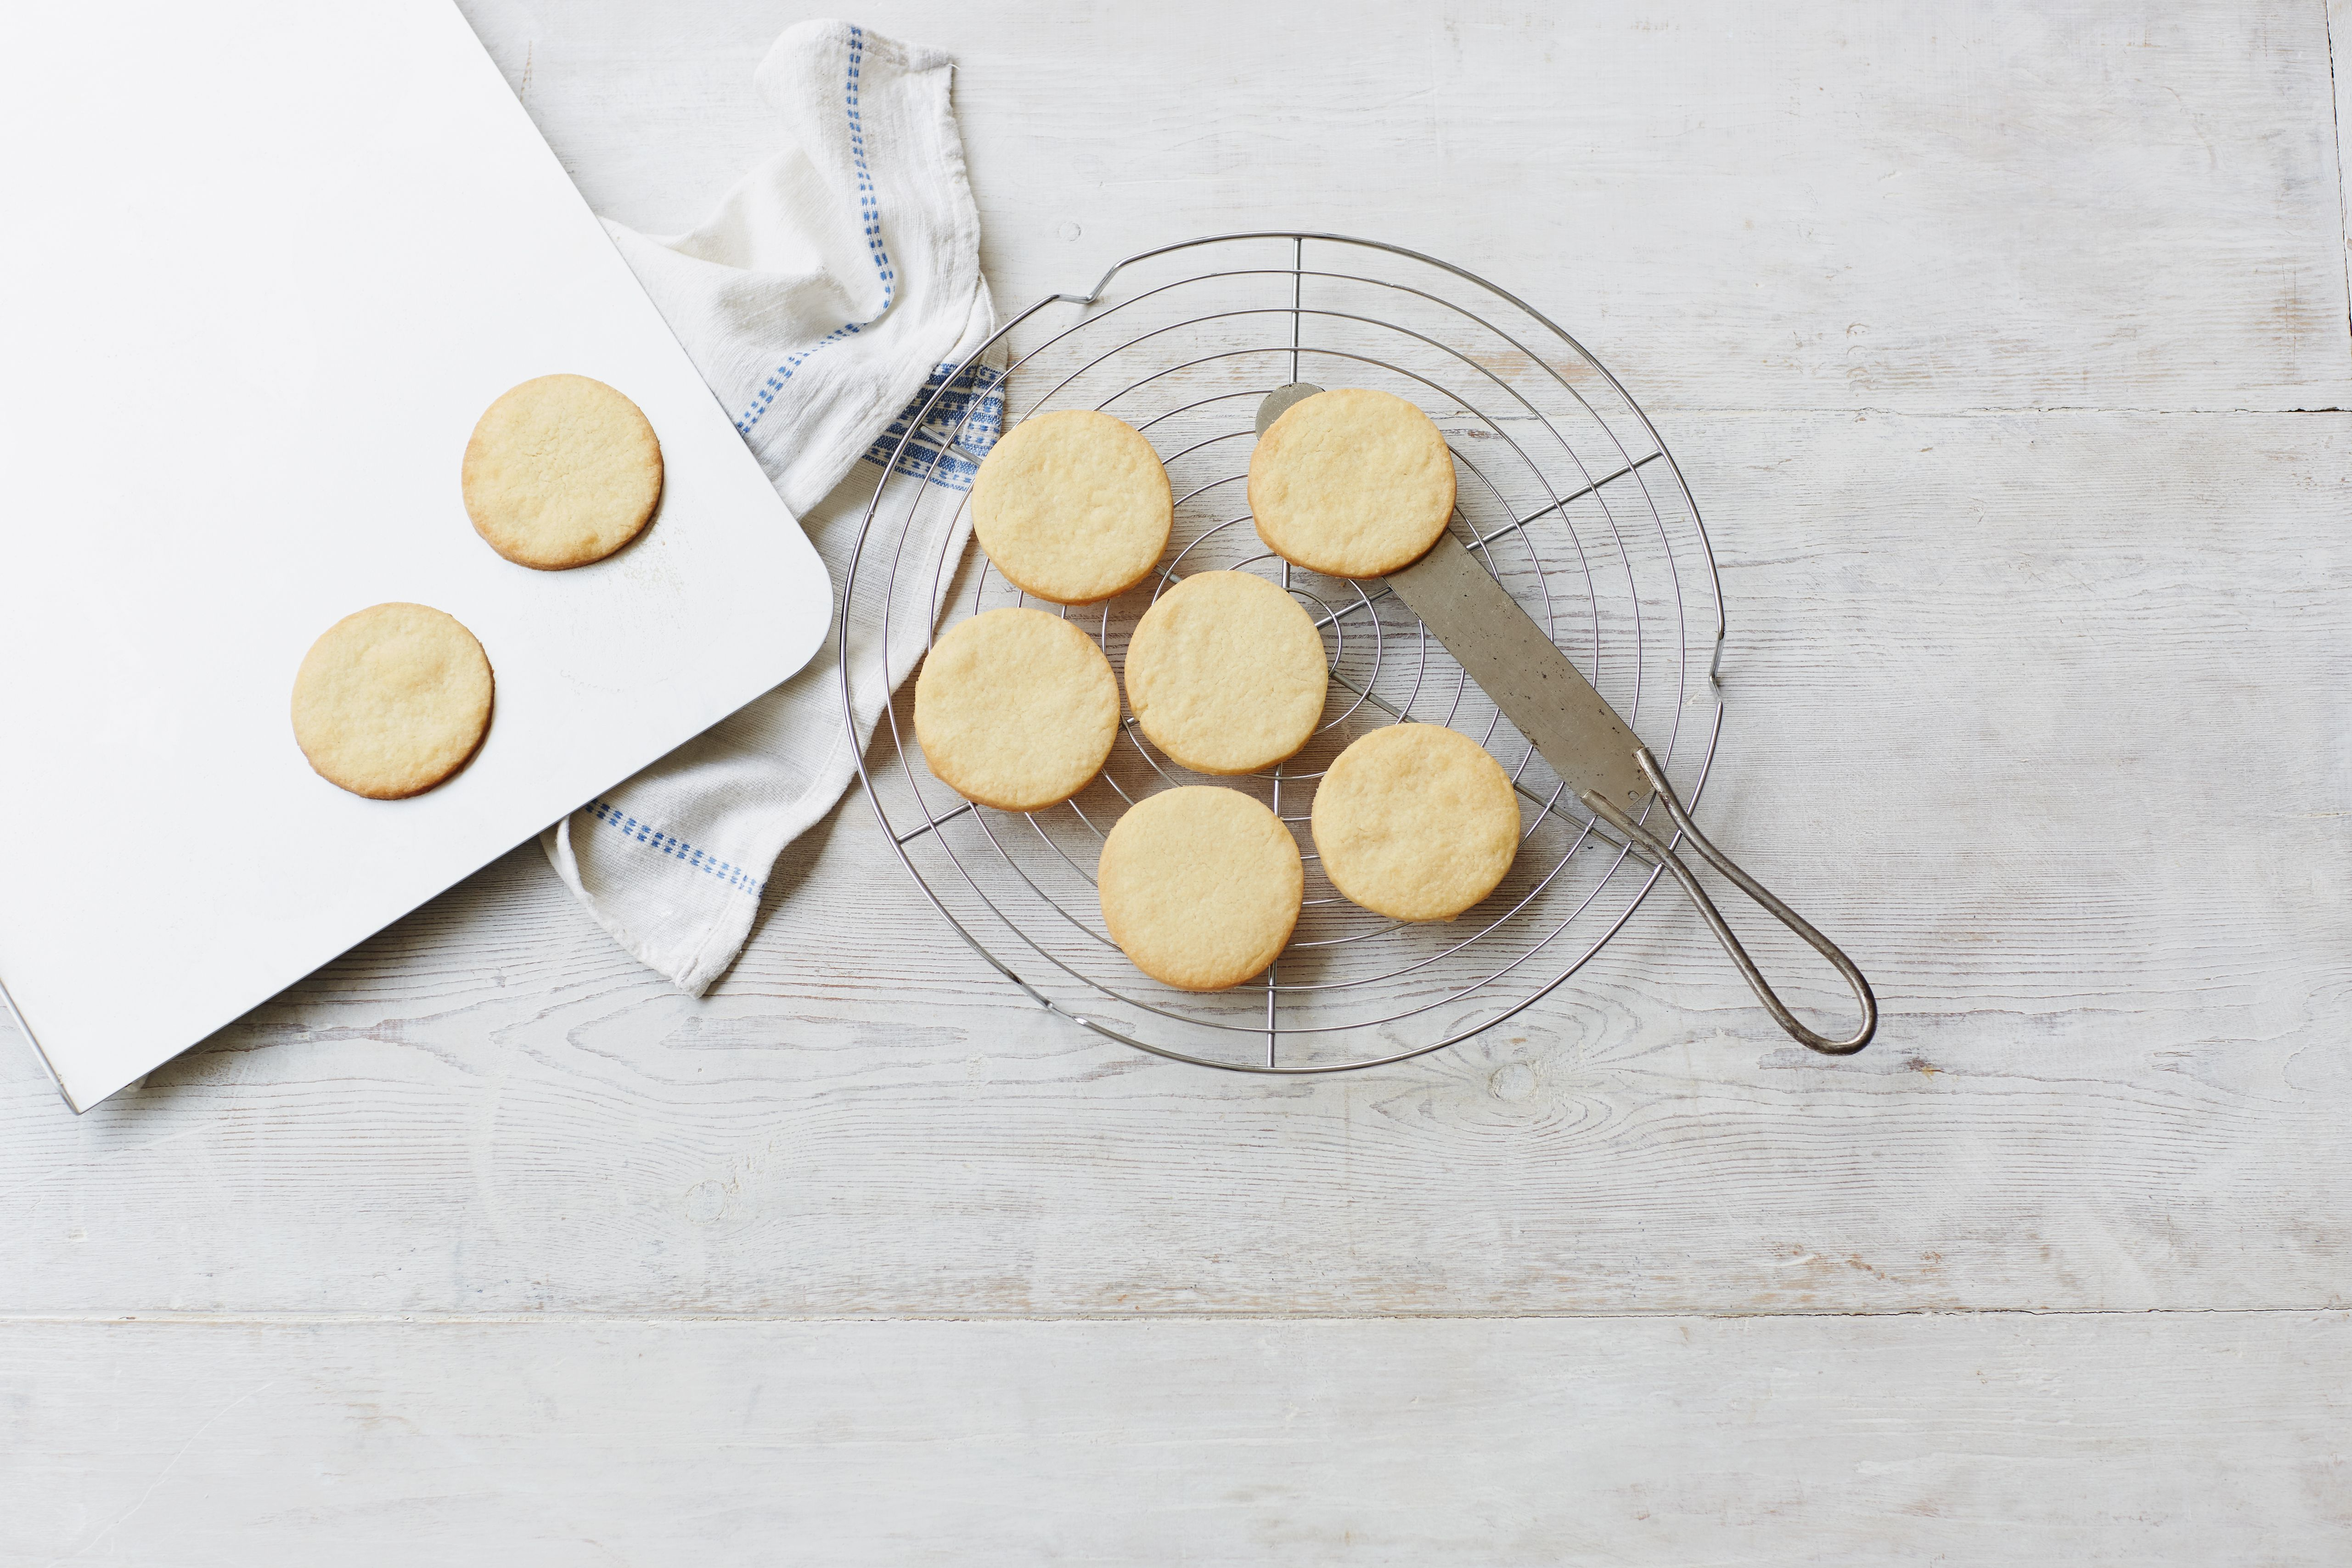 Baked sable biscuits